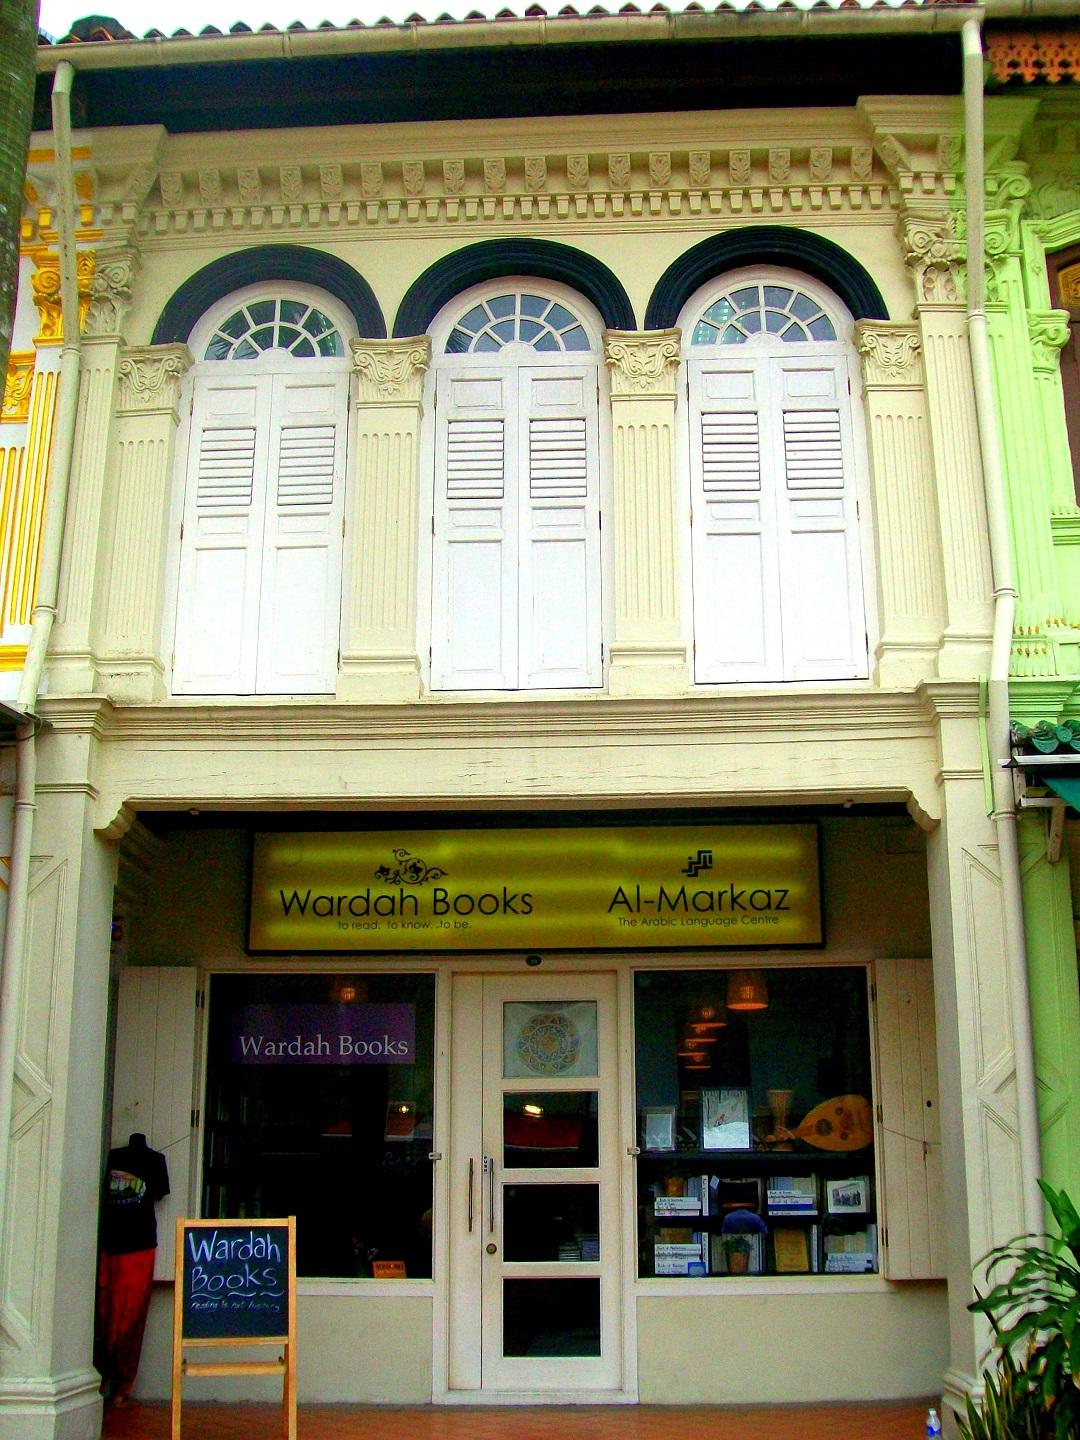 Wardah (Means Rose in Arabic)  Bookshop - Singapore